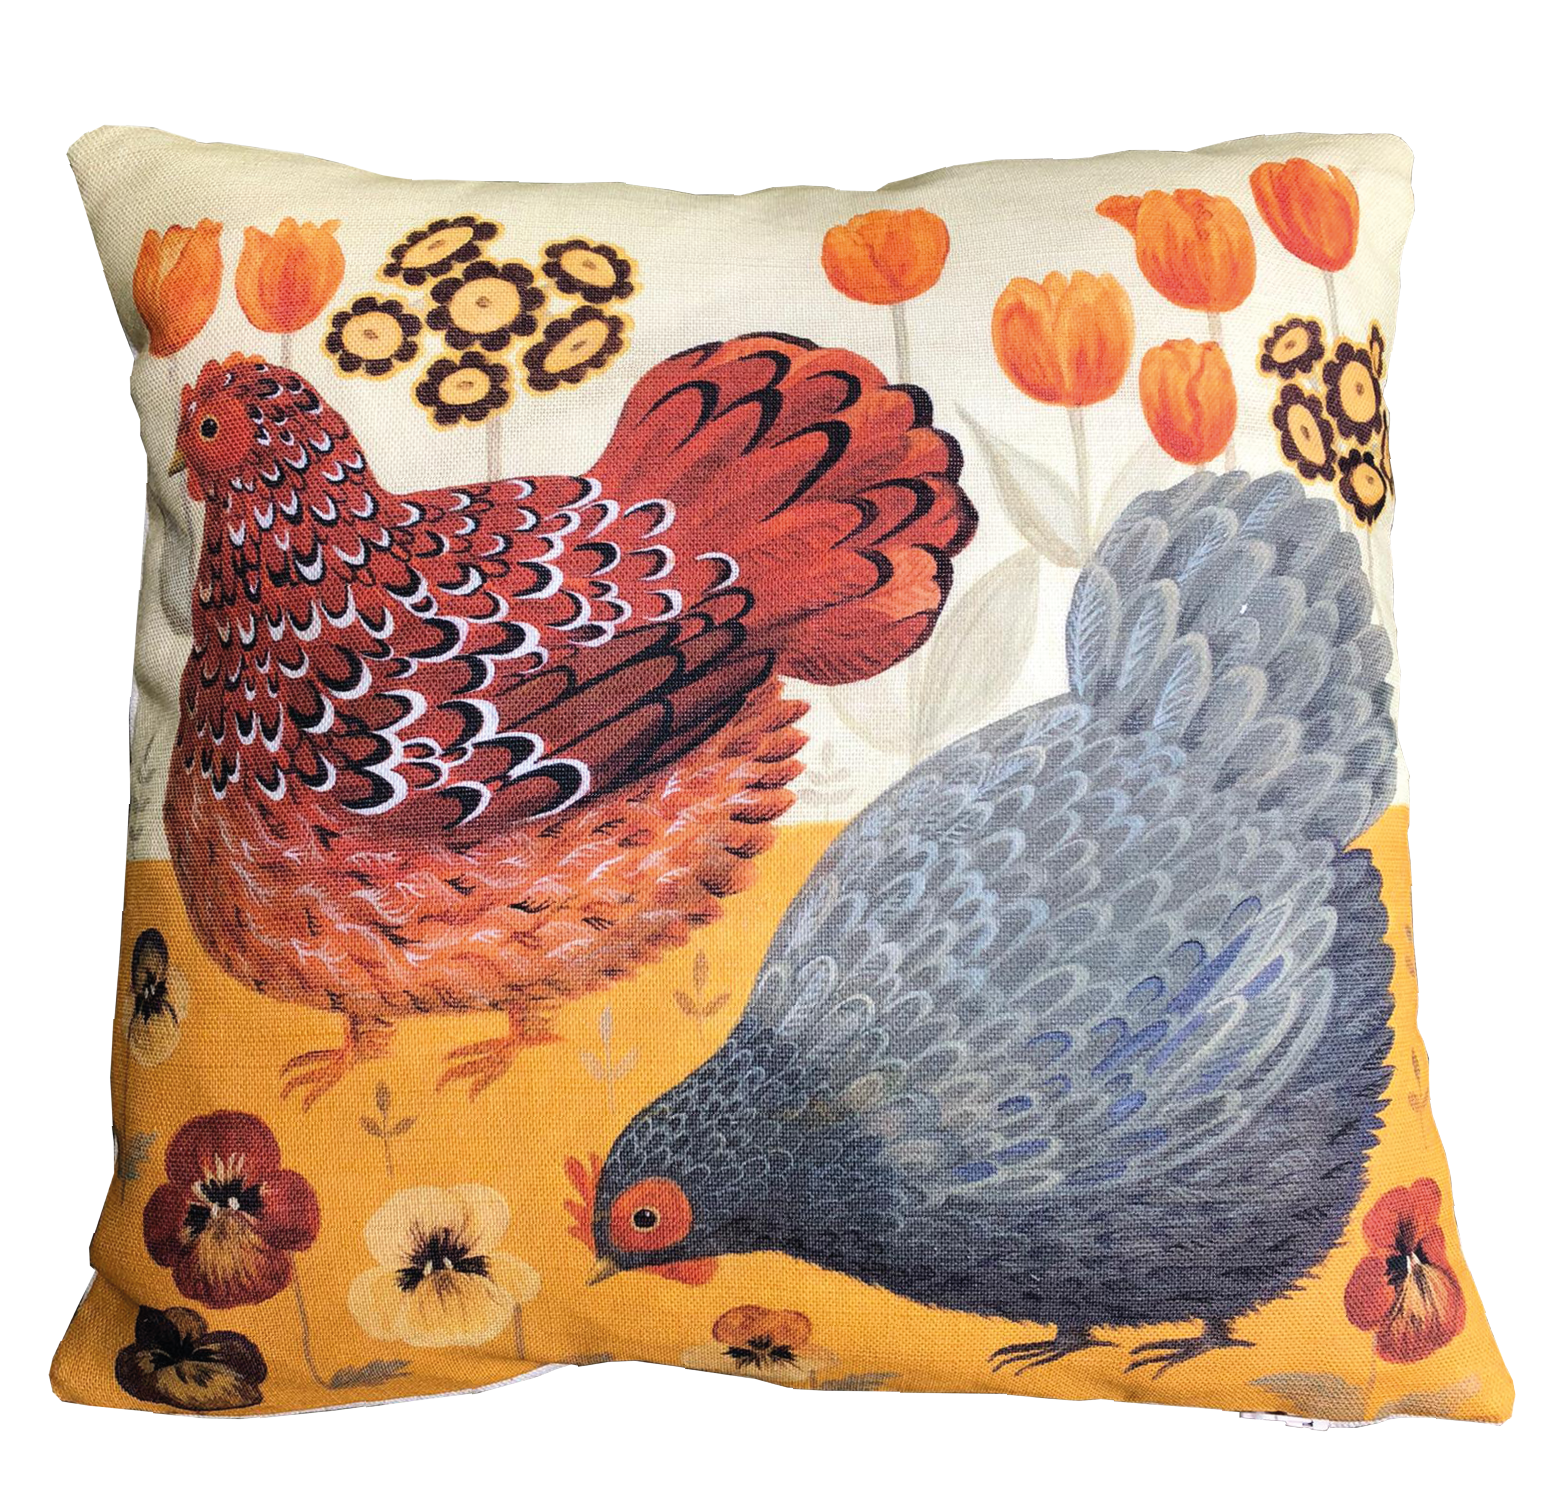 Tiptoe through the Tulips Dog & Dome cushion